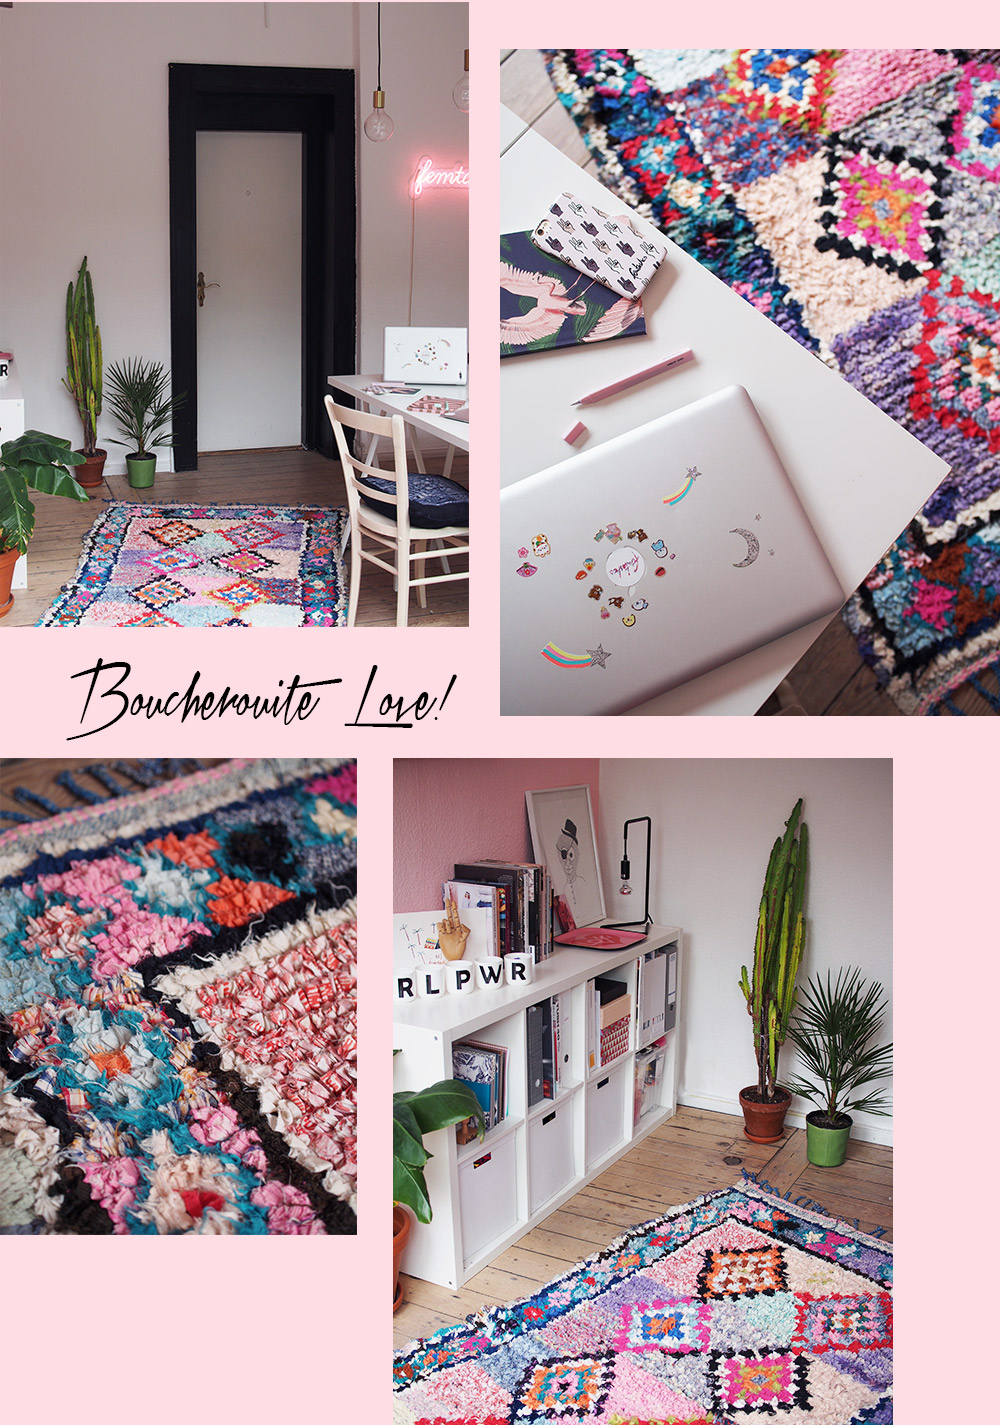 femtastics-On-the-rugs-Boucheroite-Teppich-Office